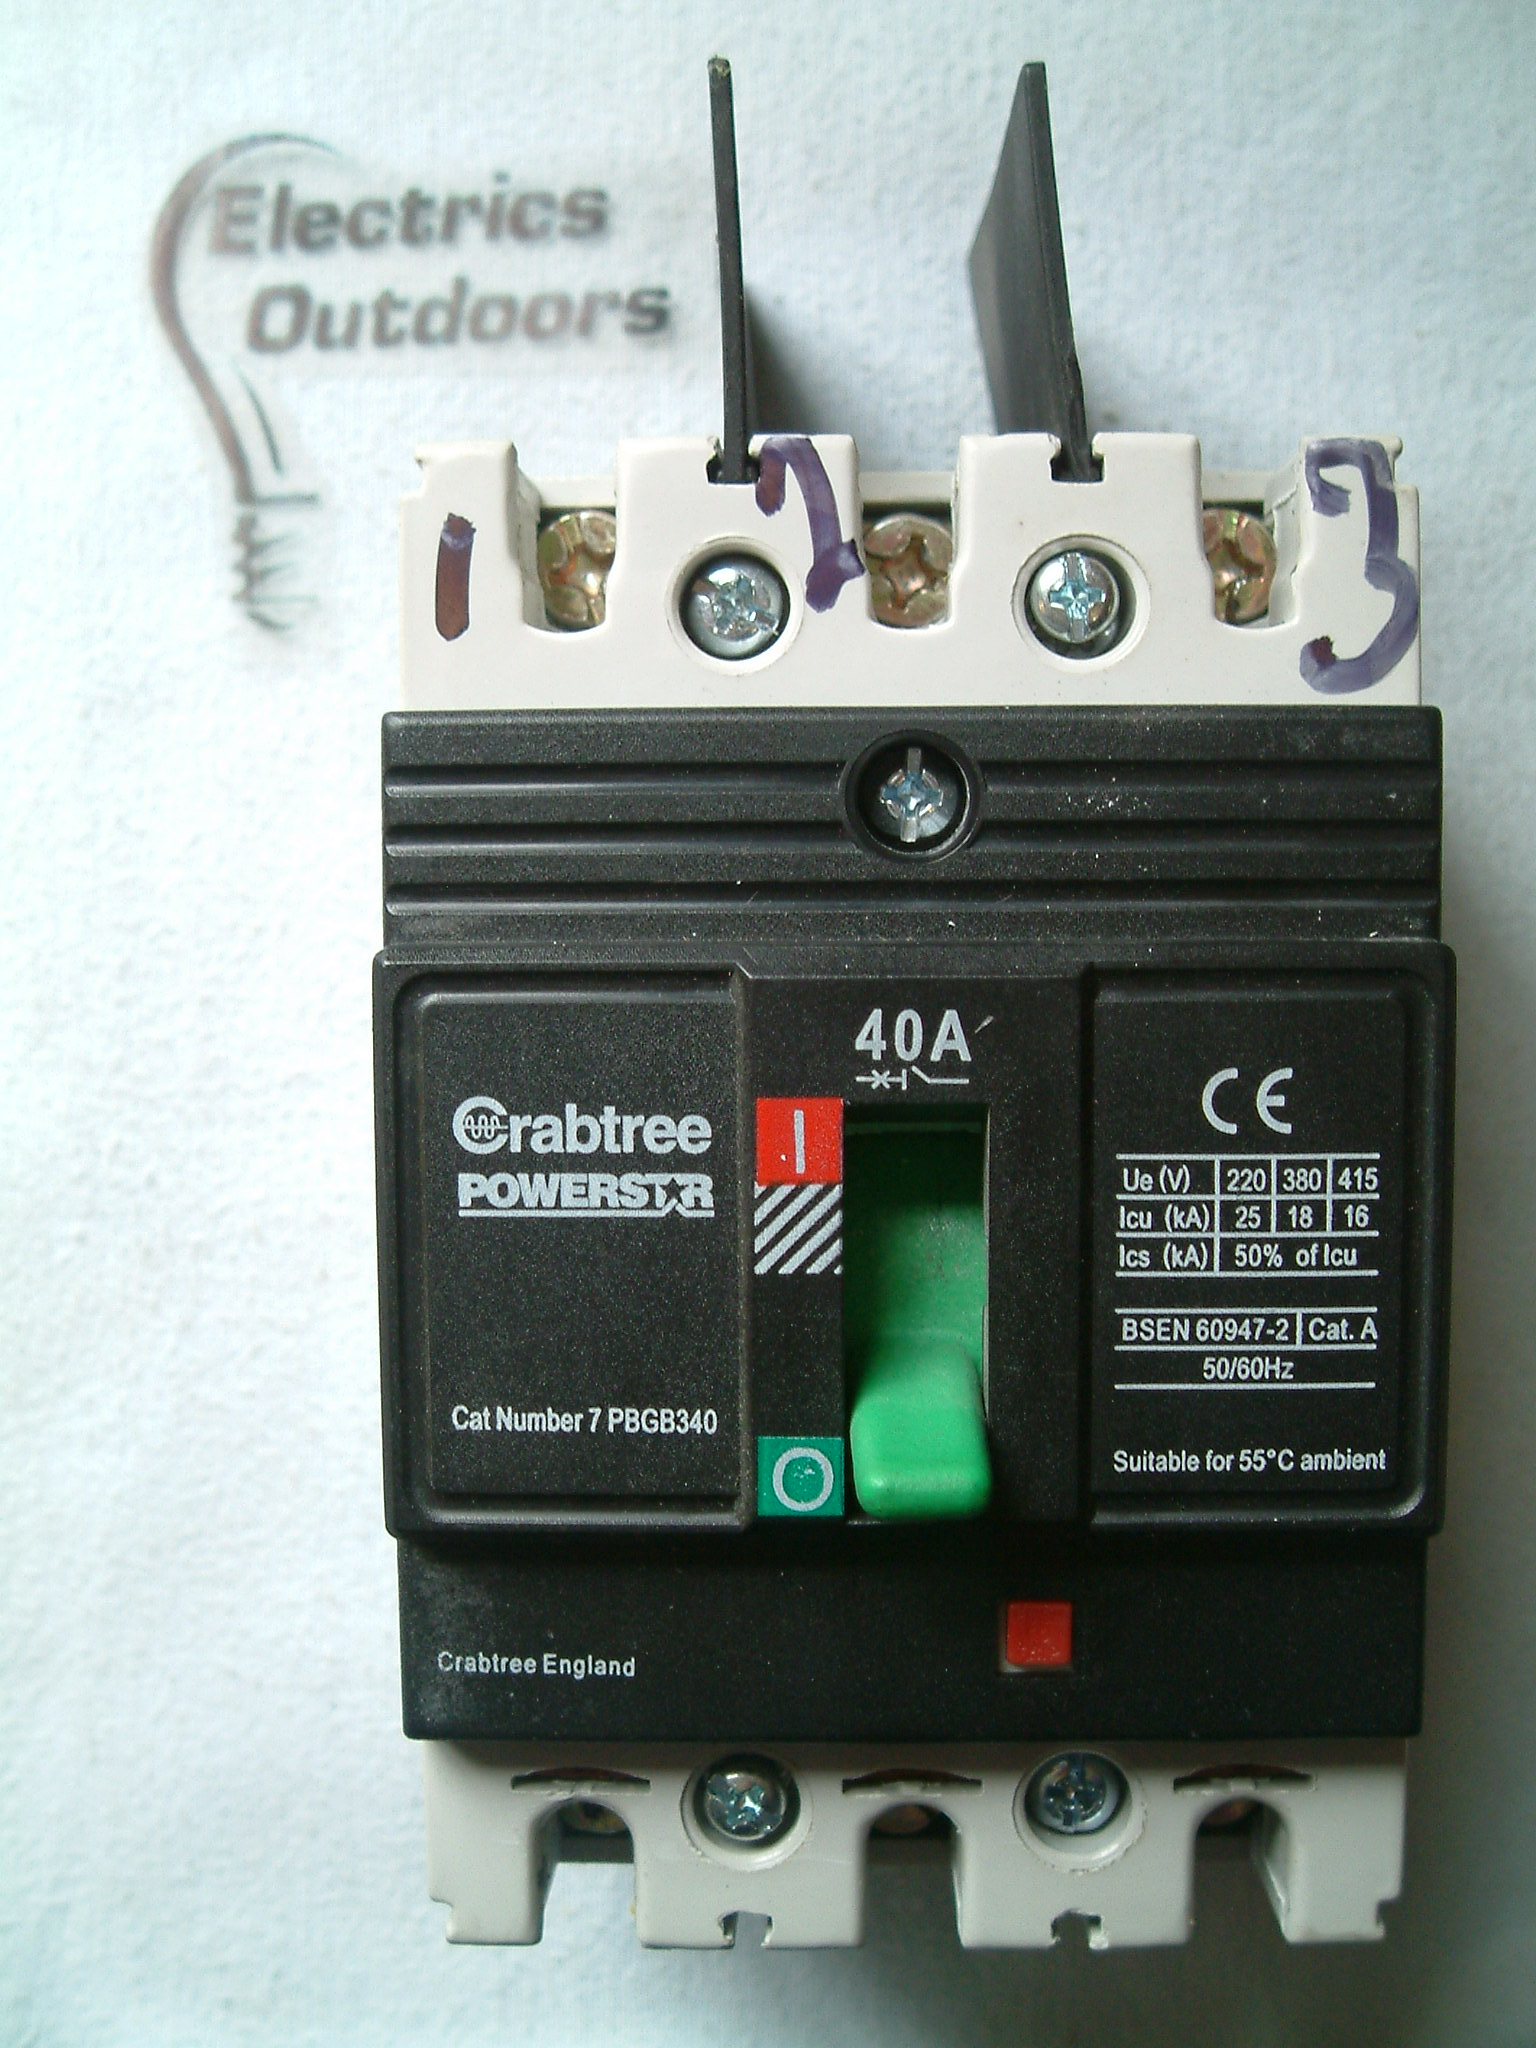 CRABTREE POWERSTAR 40 AMP 16 kA TRIPLE POLE 415v 7PBGB340